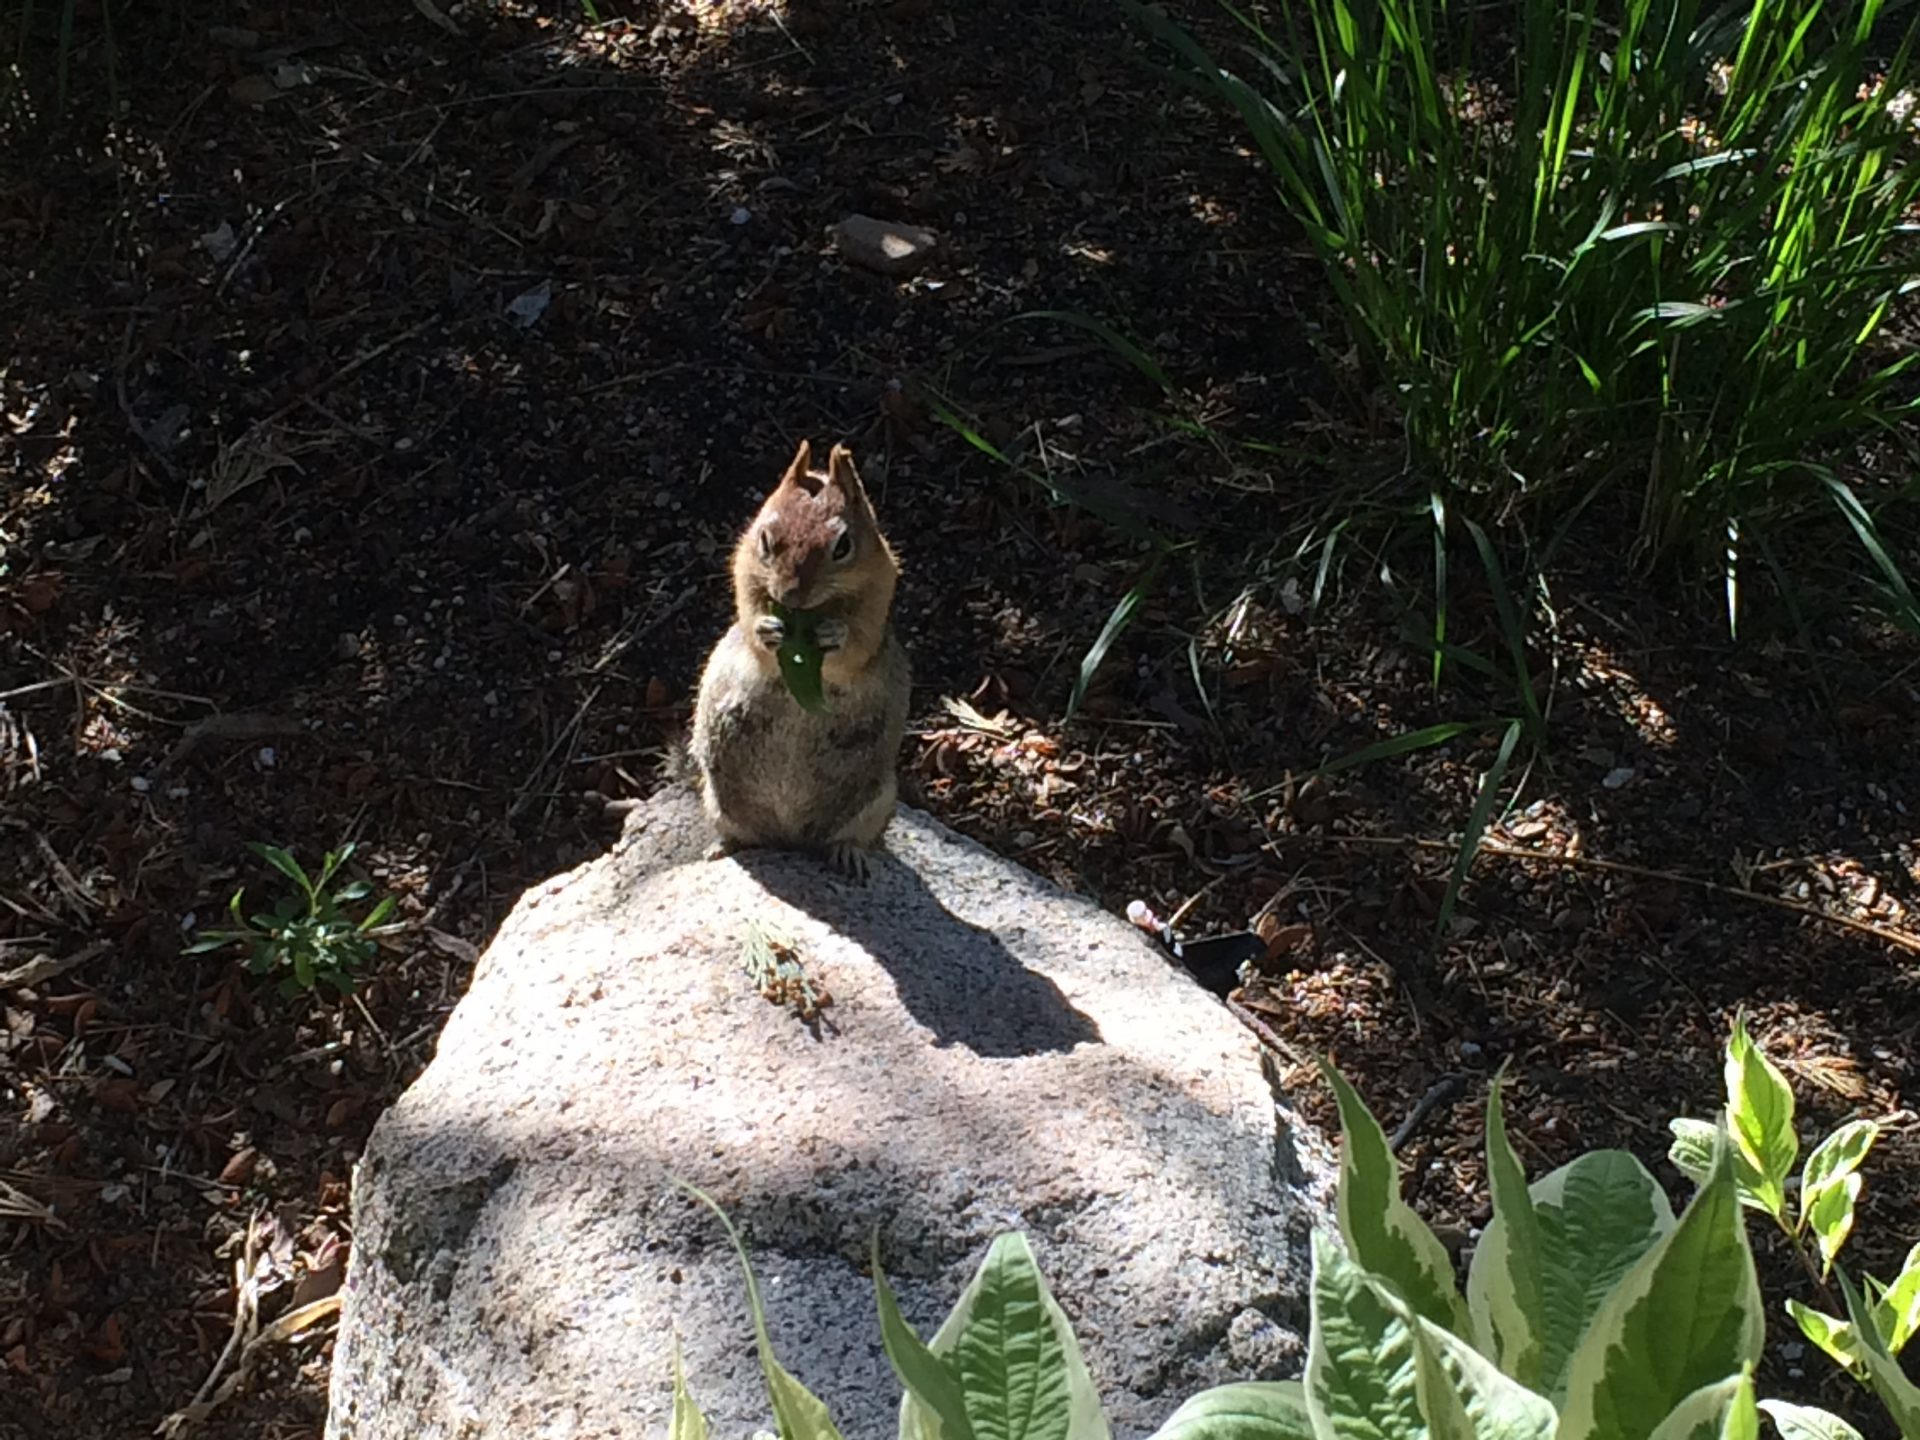 Tahoe chipmunk eating plants 07